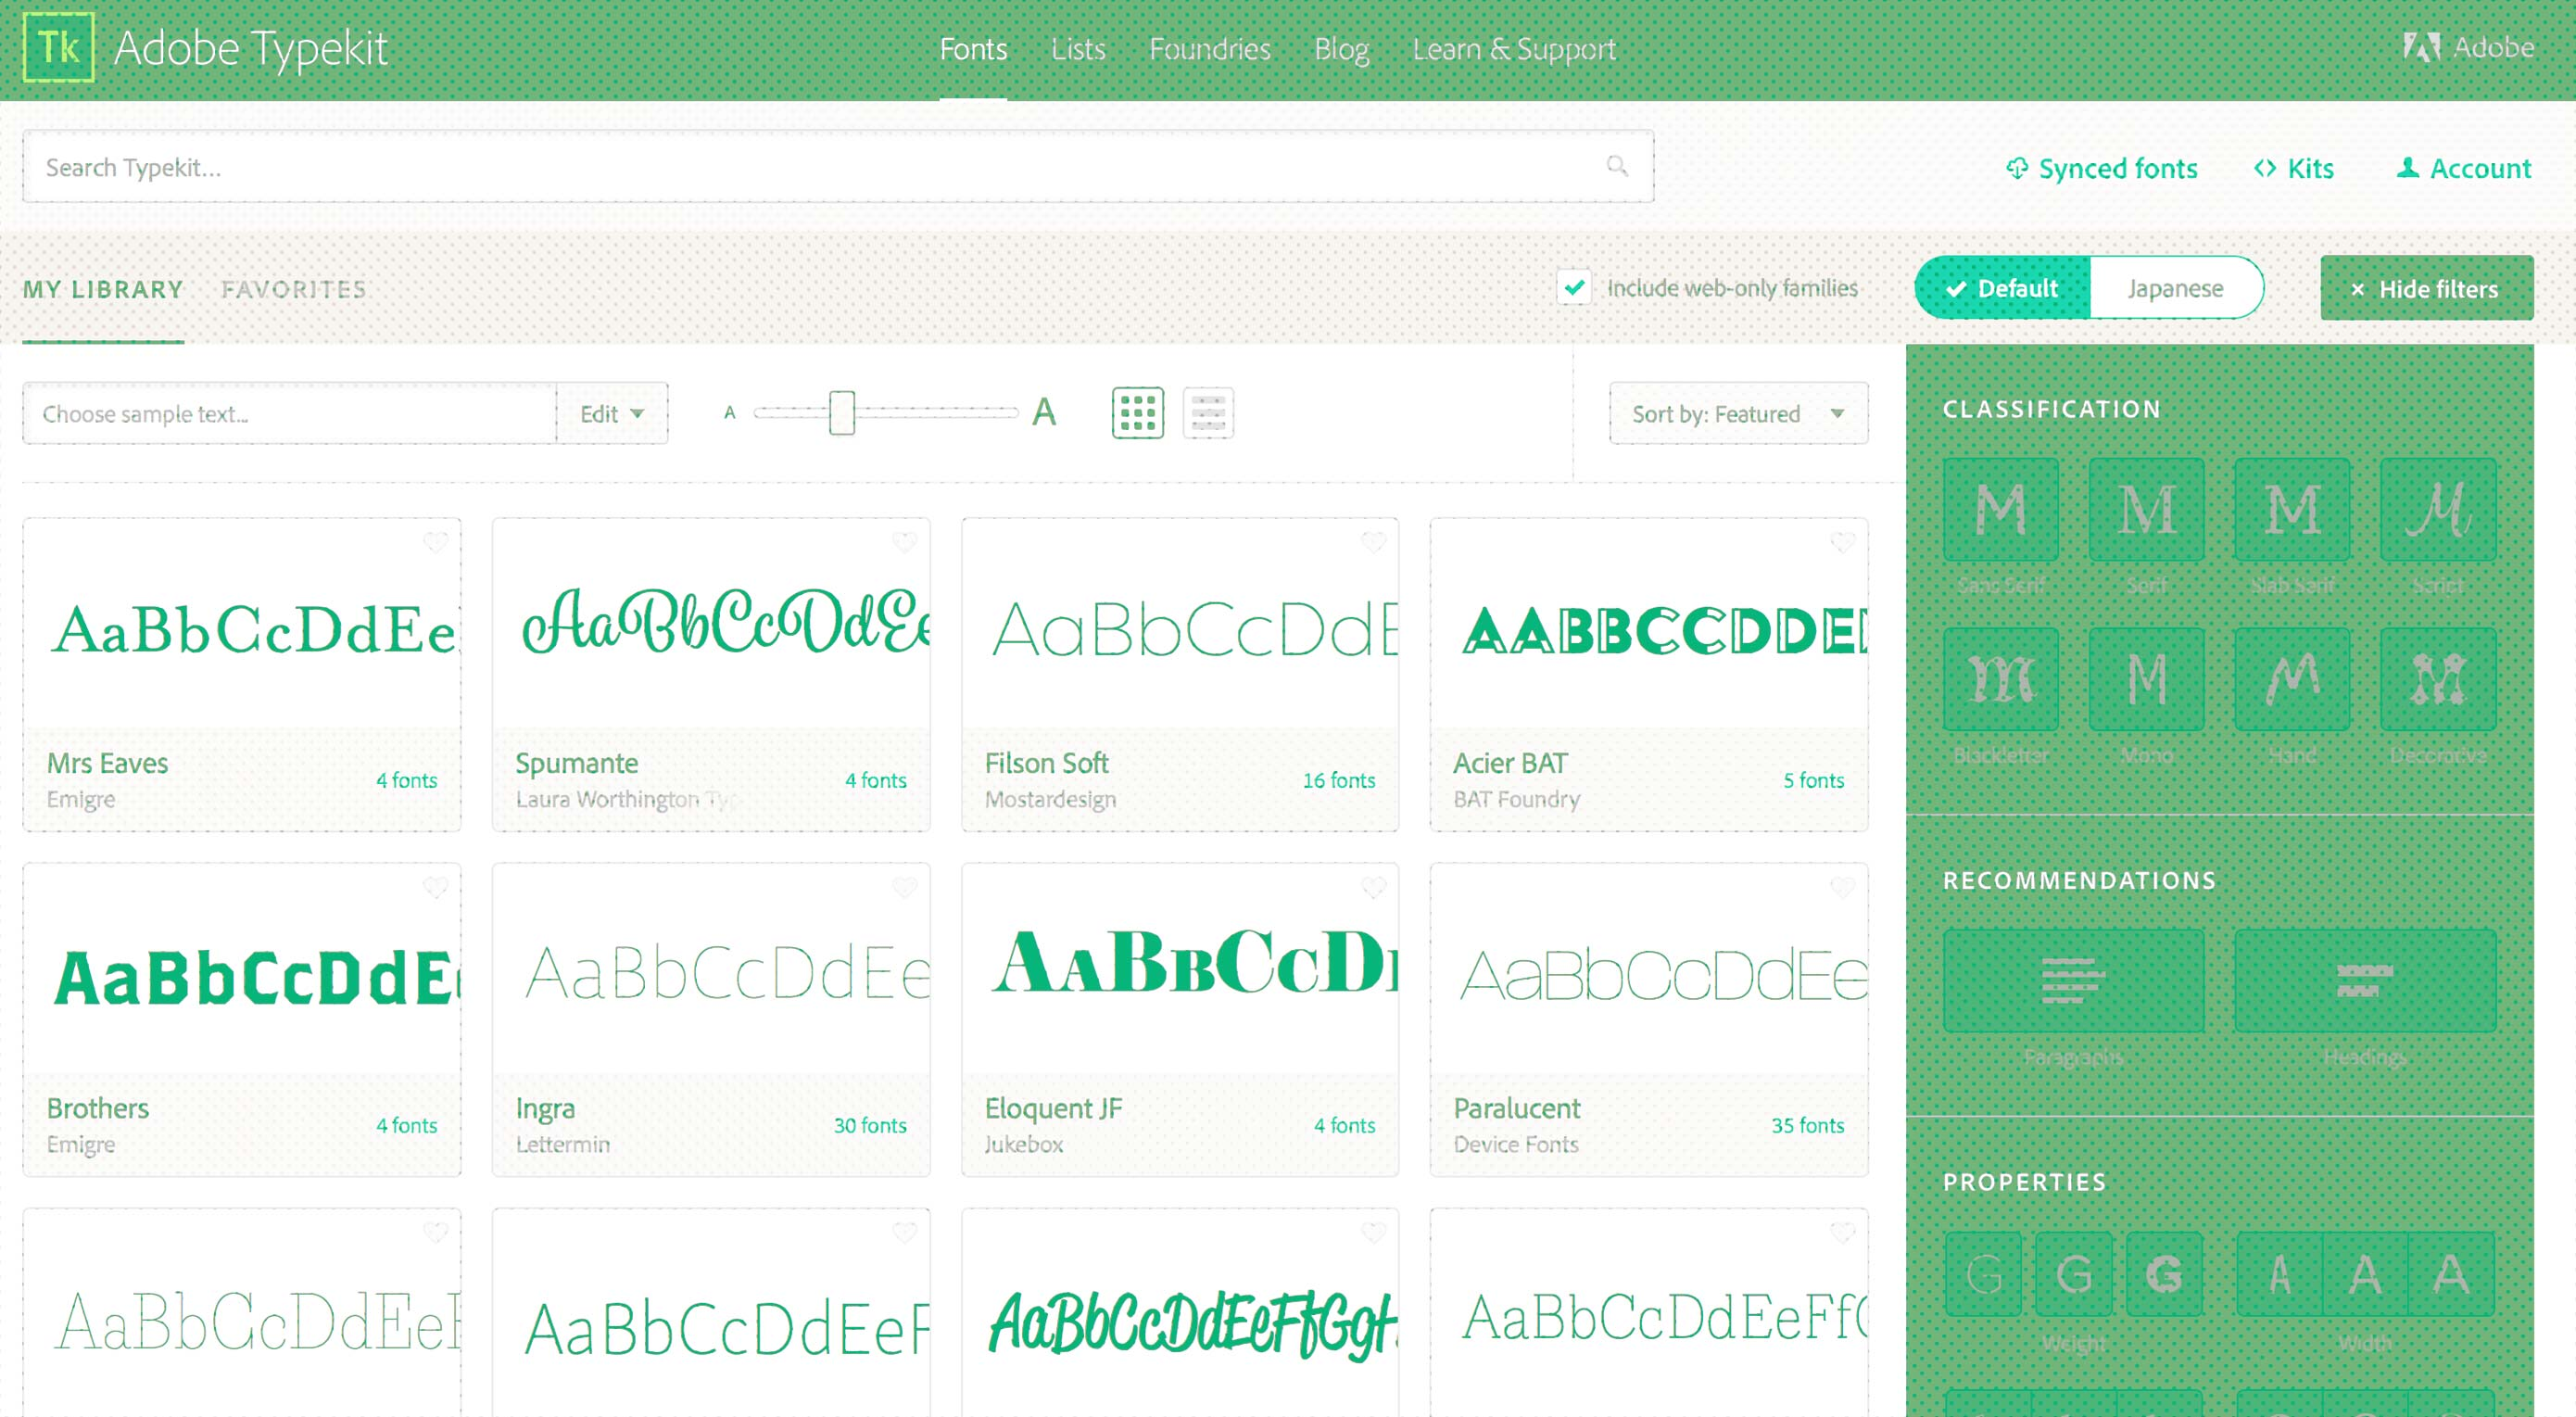 Adobe Typekit unveils major redesign